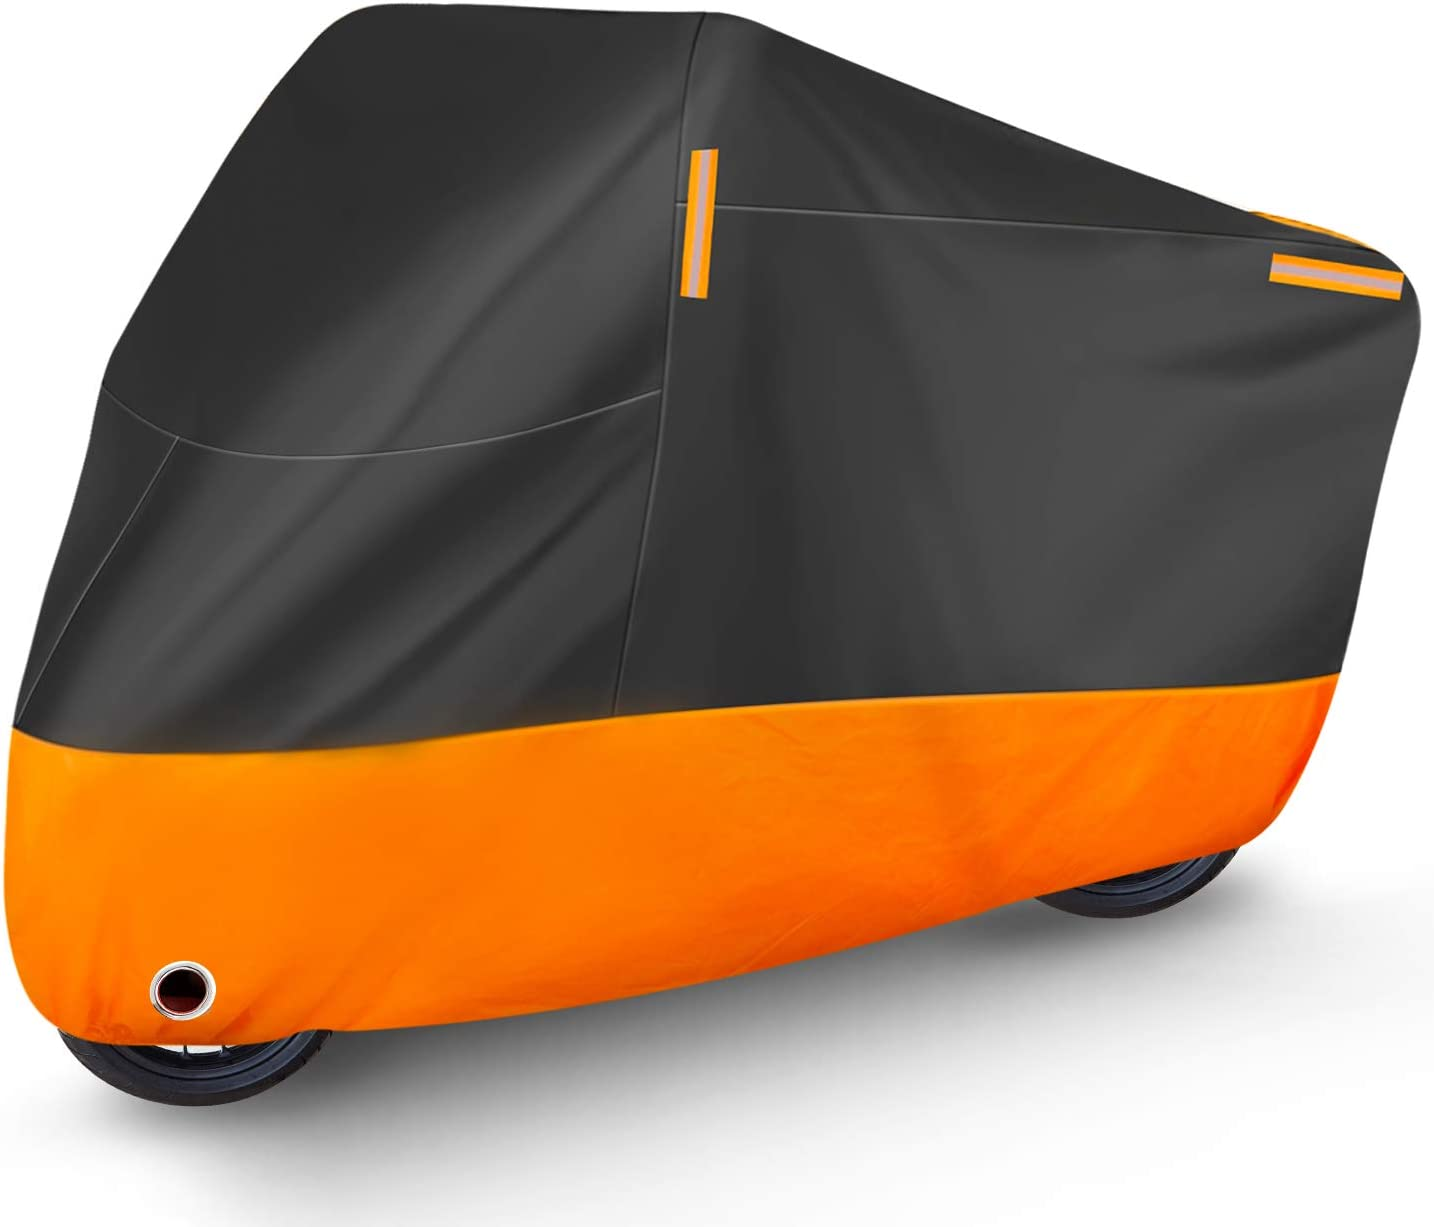 Honda Puroma Motorcycle Cover XXX-Large Waterproof Motorbike Cover Outdoor Indoor Scooter Shelter Protection with 4 Reflective Strips for Harley Davidson Kawasaki Suzuki Yamaha